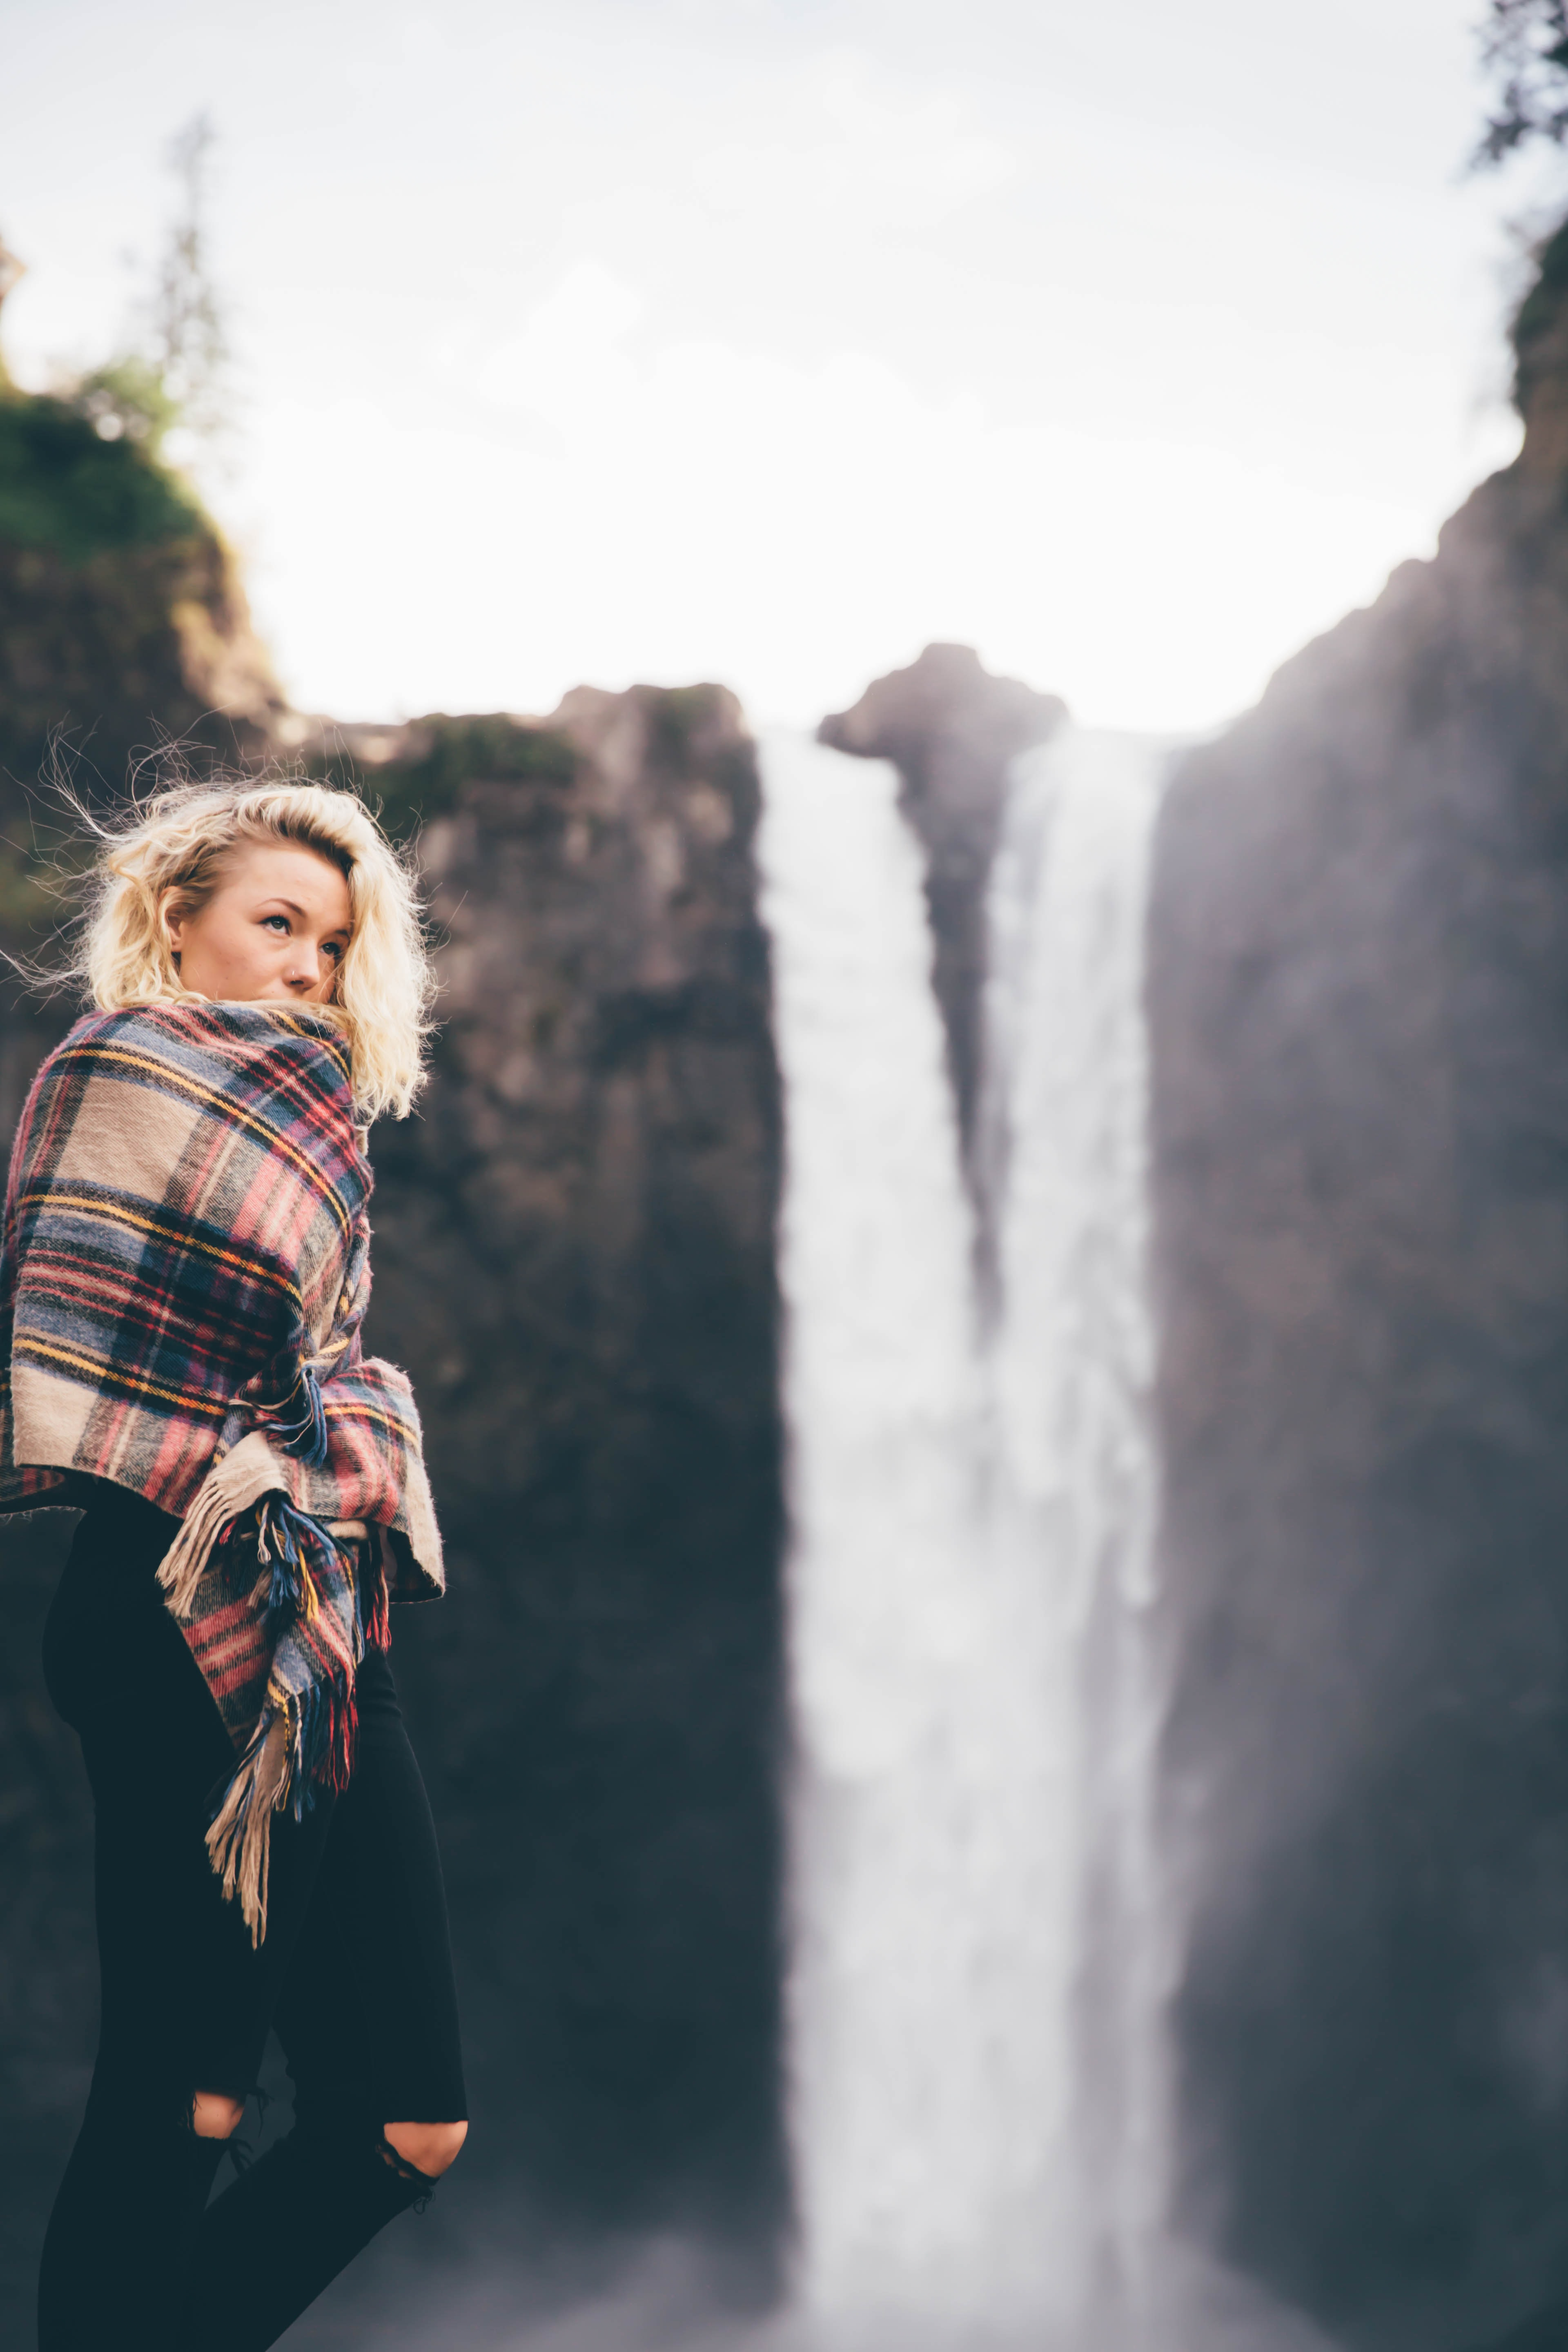 A woman wrapped in a plaid scarf or blanket standing on the edge of Snoqualmie Falls